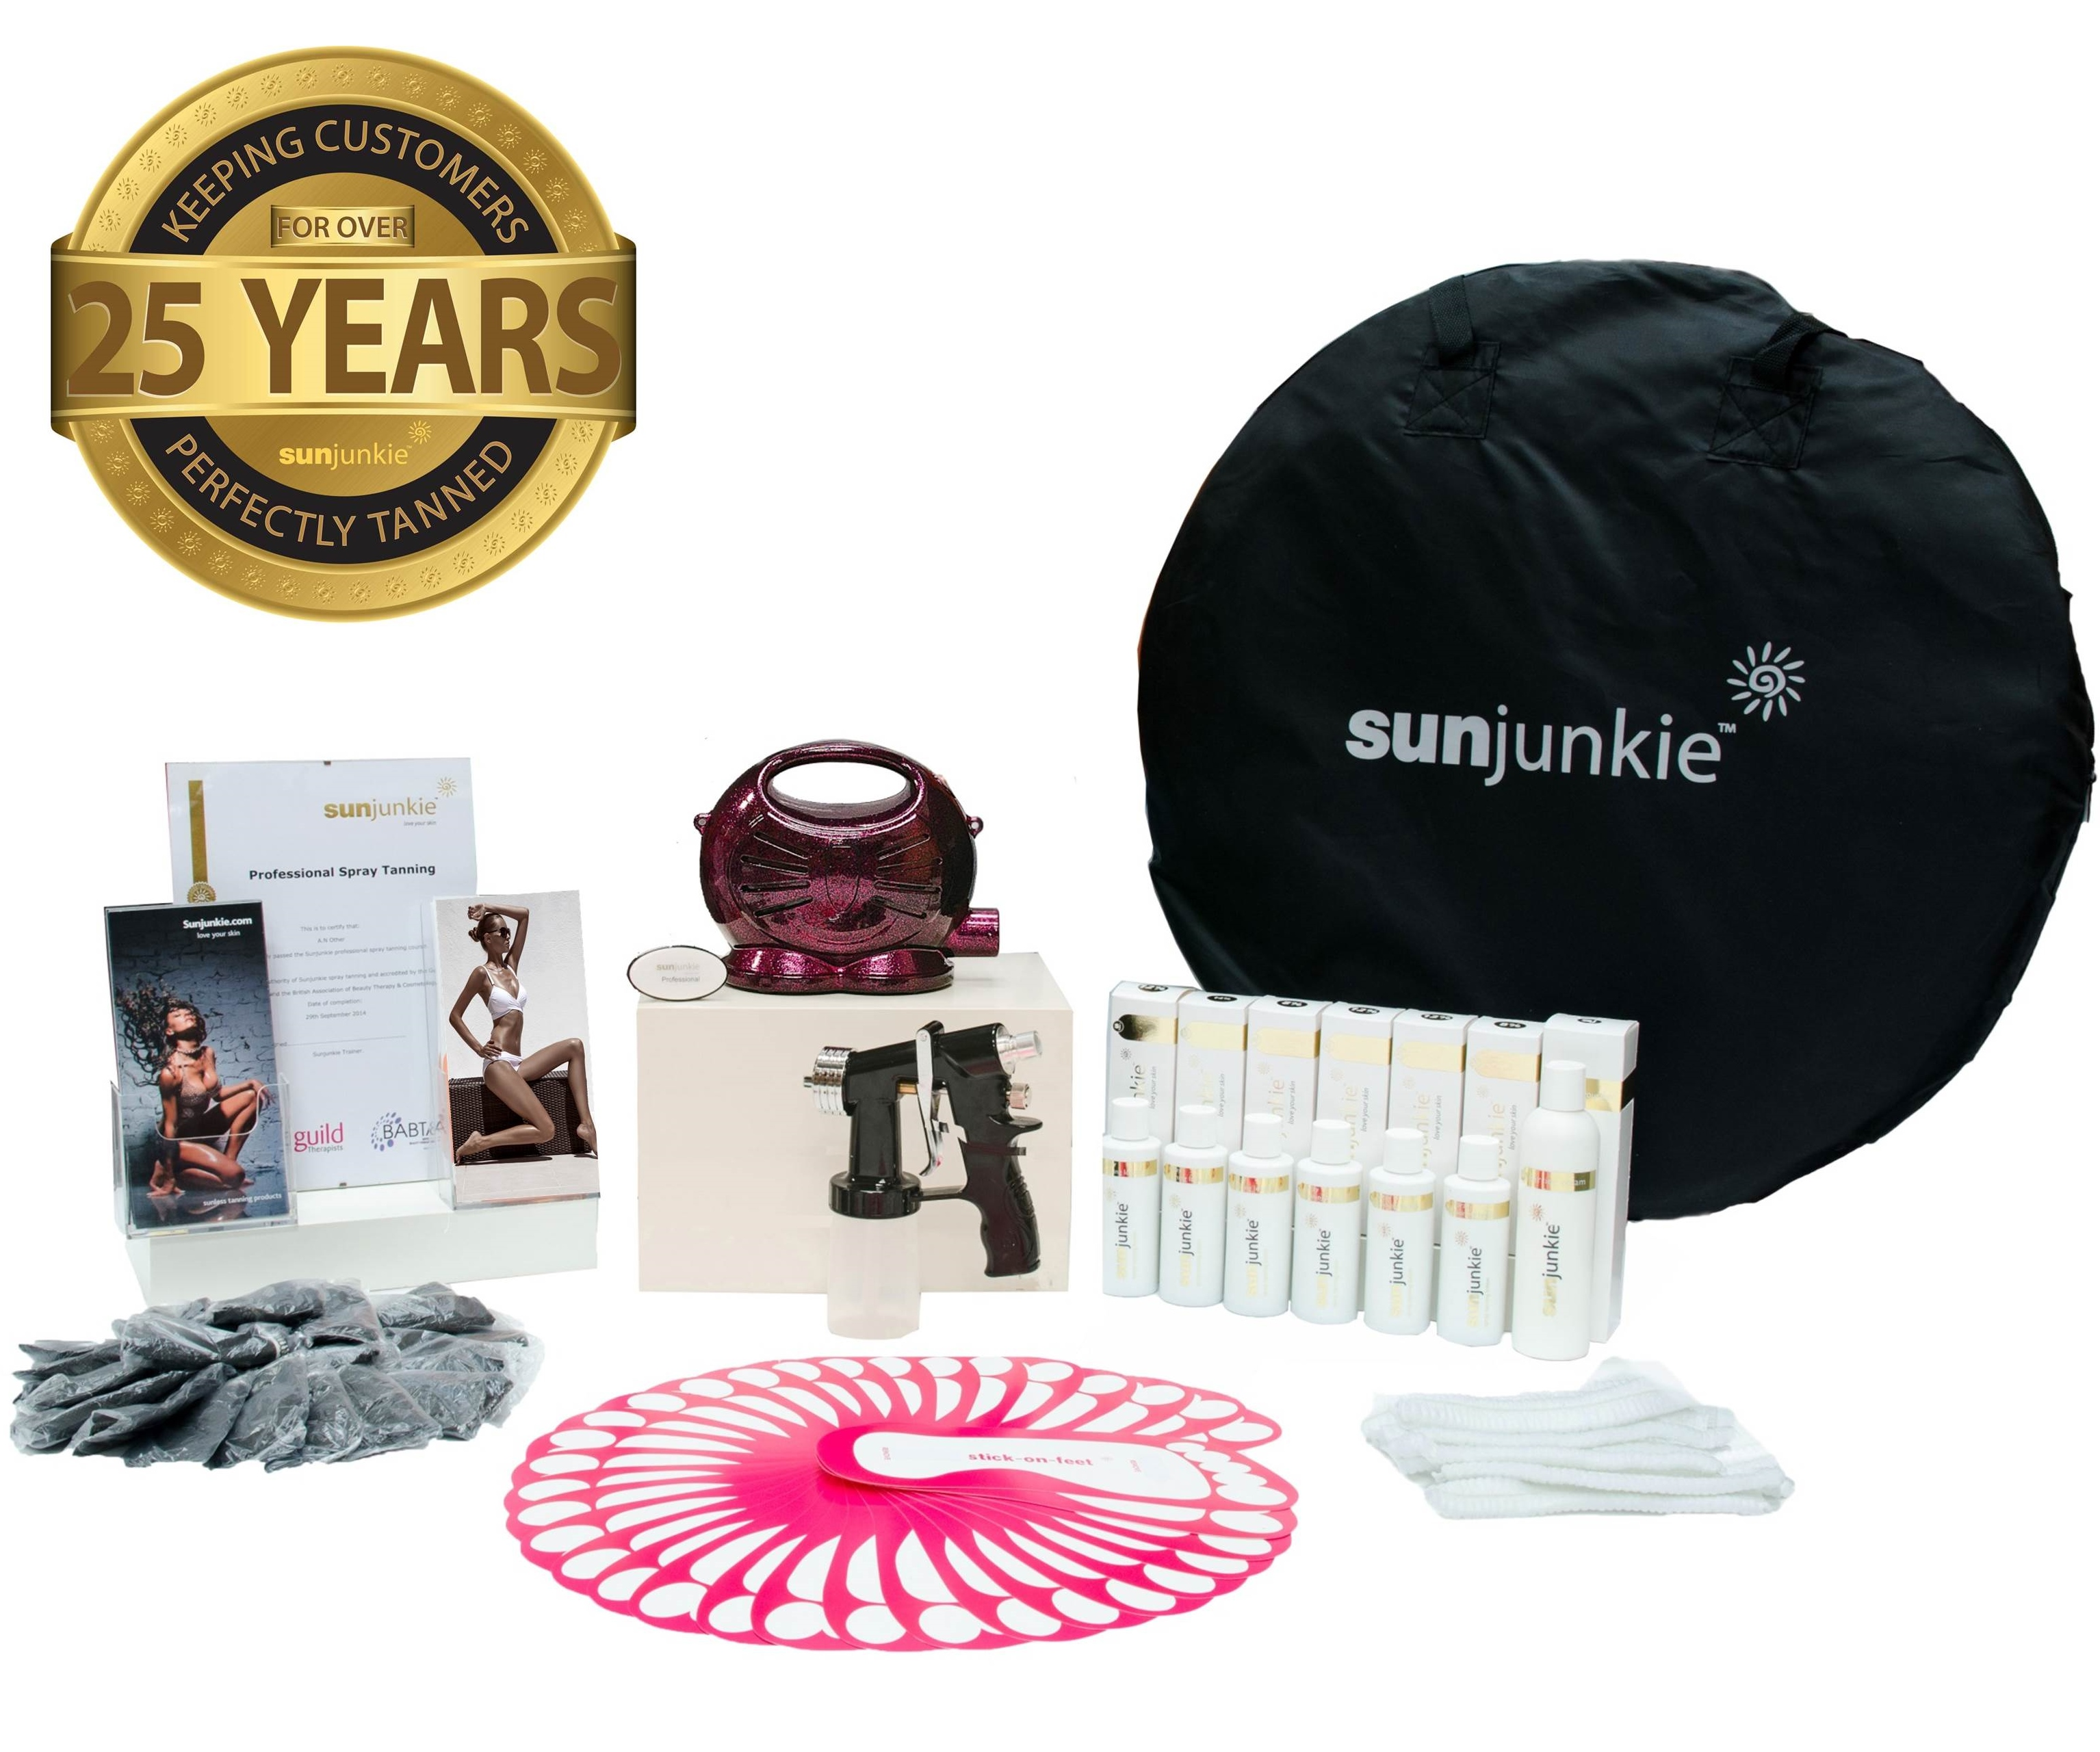 Sunjunkie spray tanning machines | spray tan kit | packages | reviews